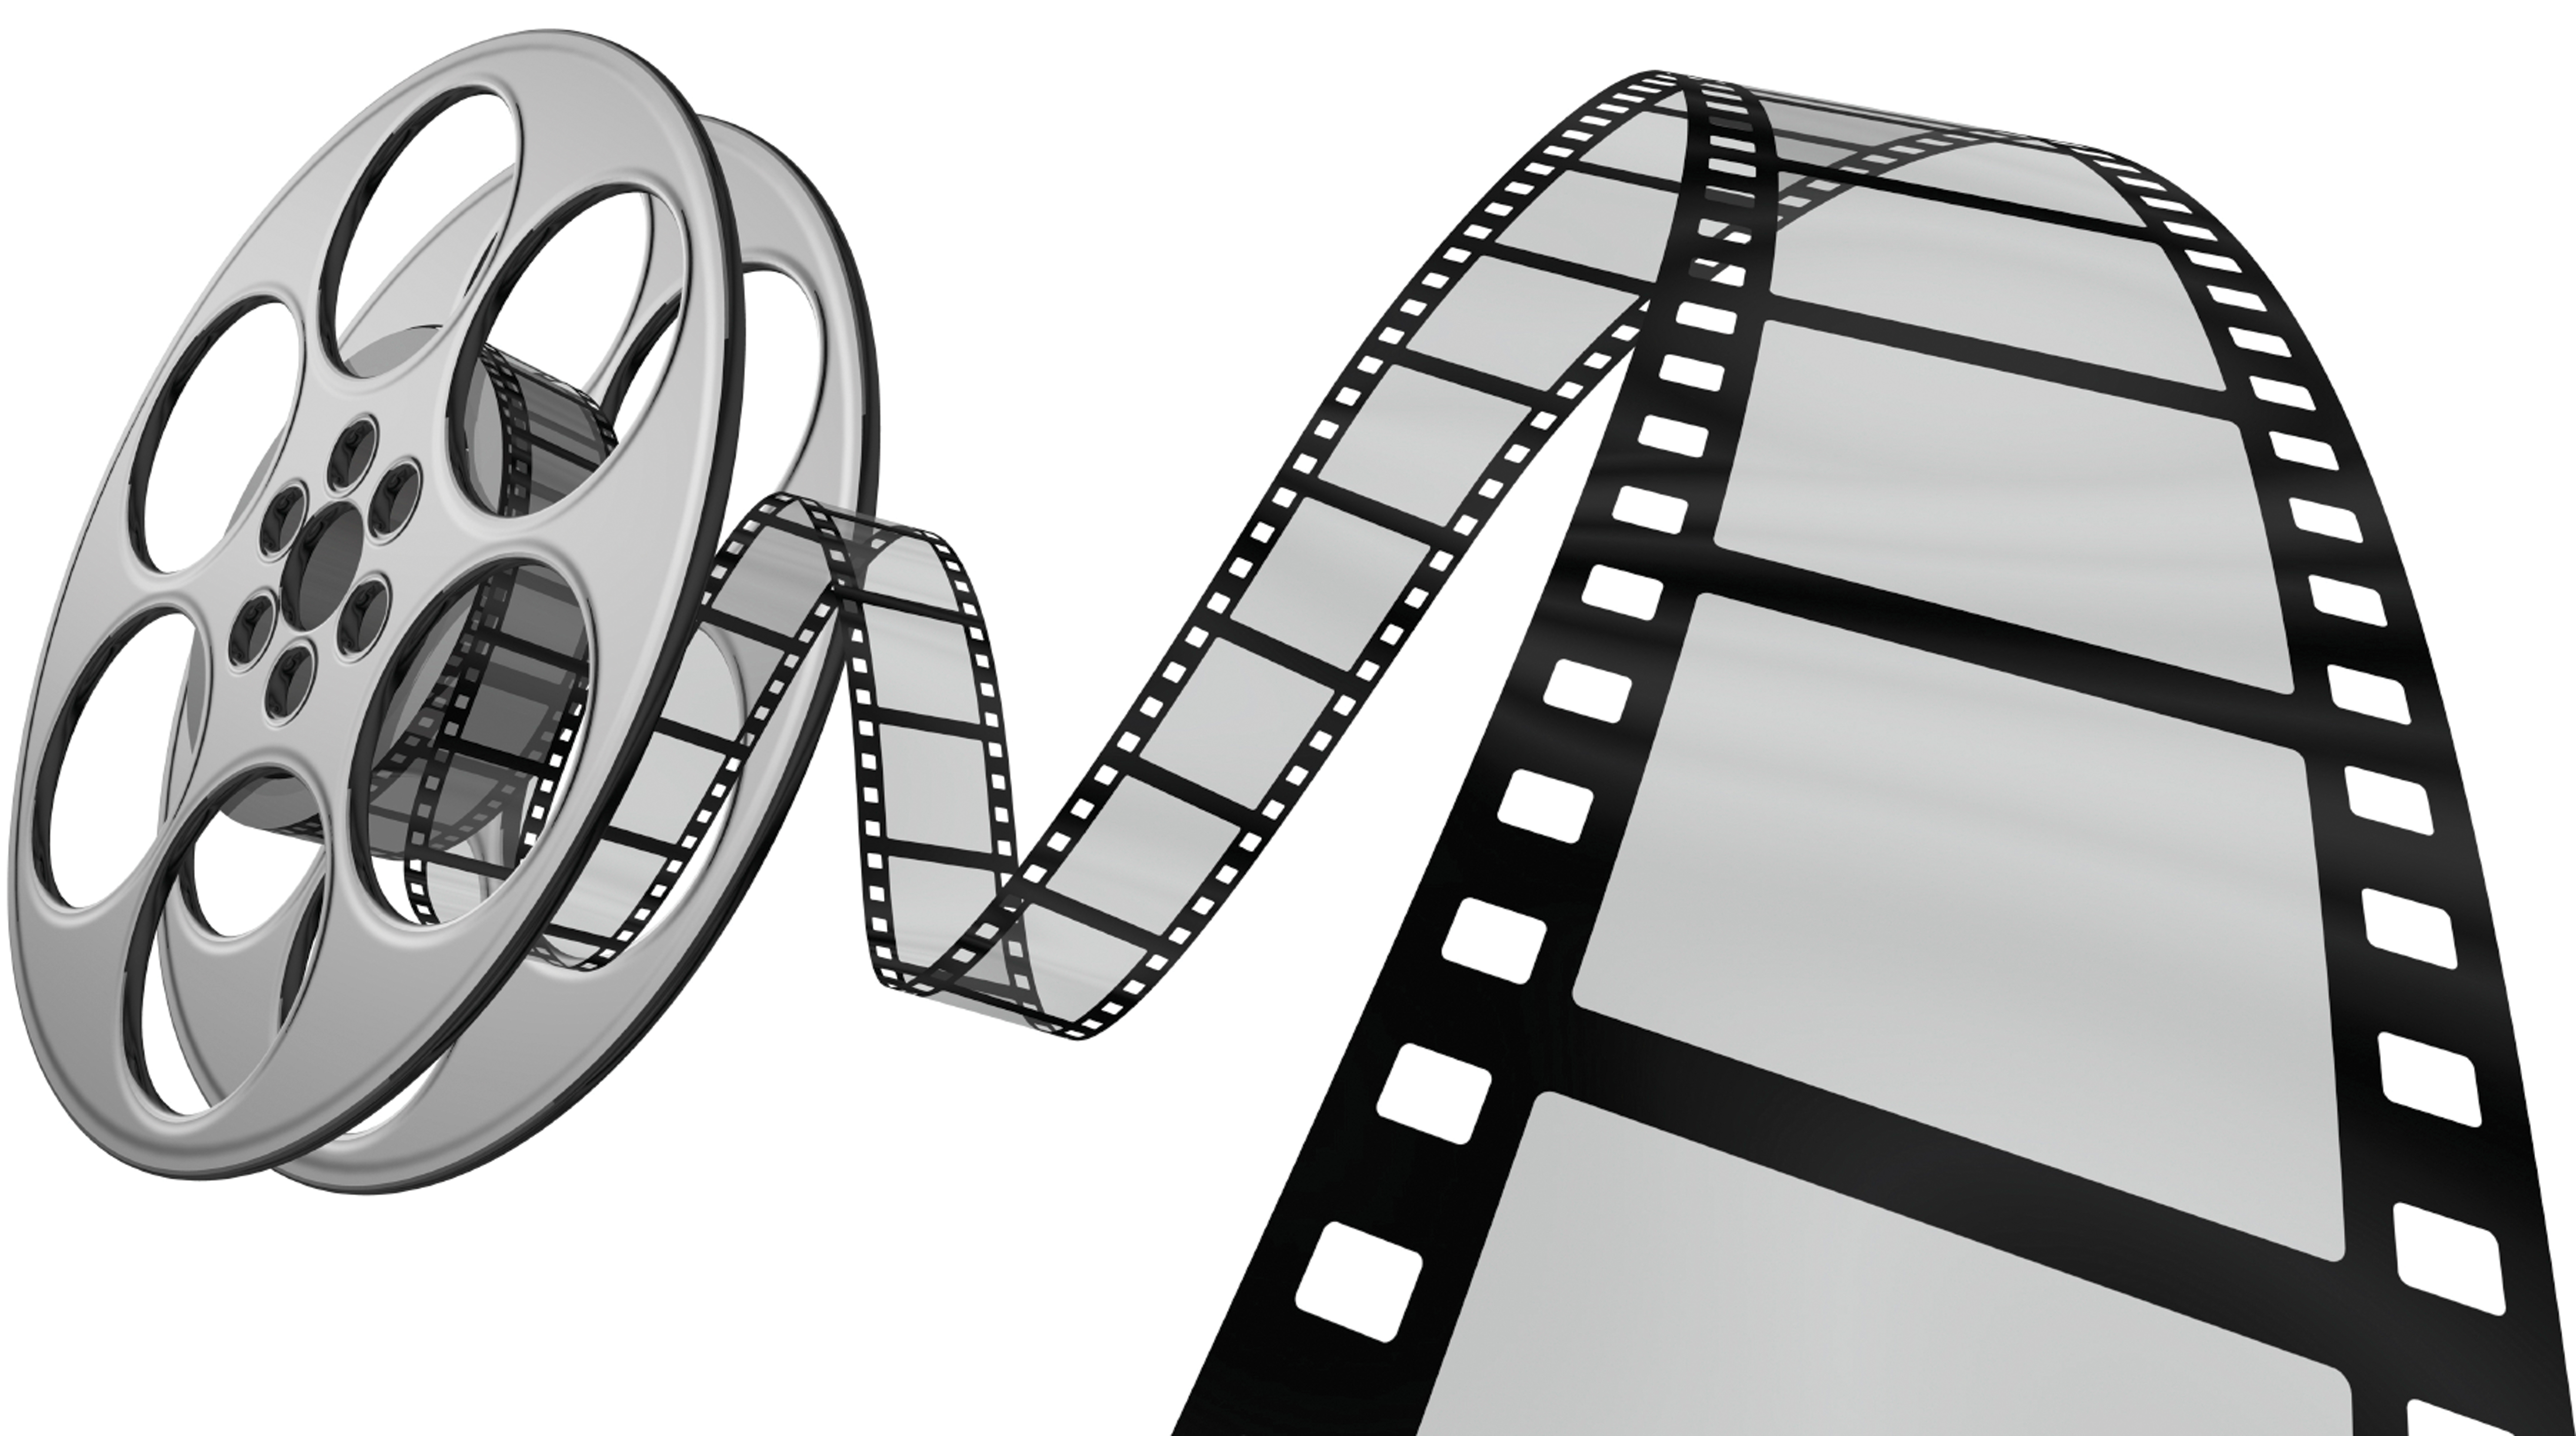 Movie Reel Clipart - Clipart library - Movie Reel PNG